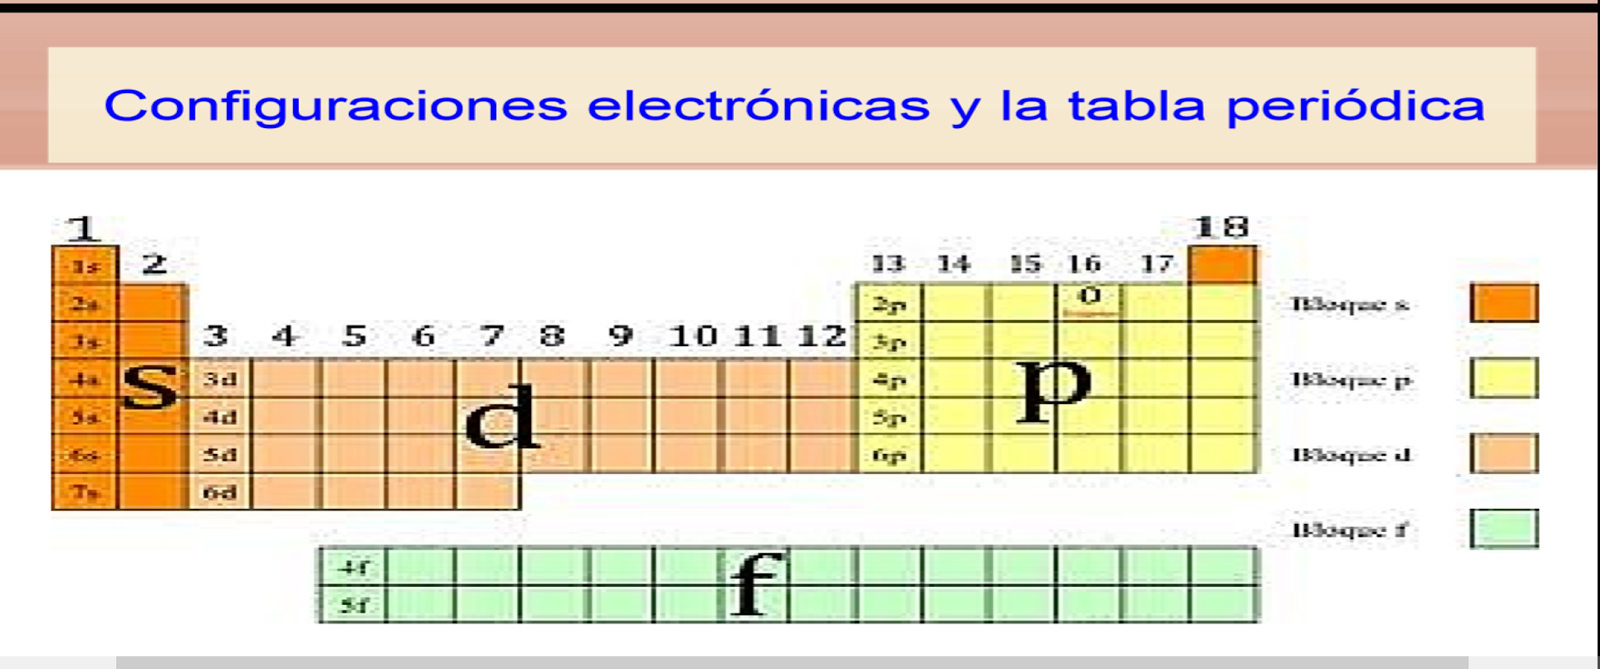 Tabla periodica en configuracion electronica choice image periodic tabla periodica en configuracion electronica image collections tabla periodica en configuracion electronica images periodic table tabla urtaz